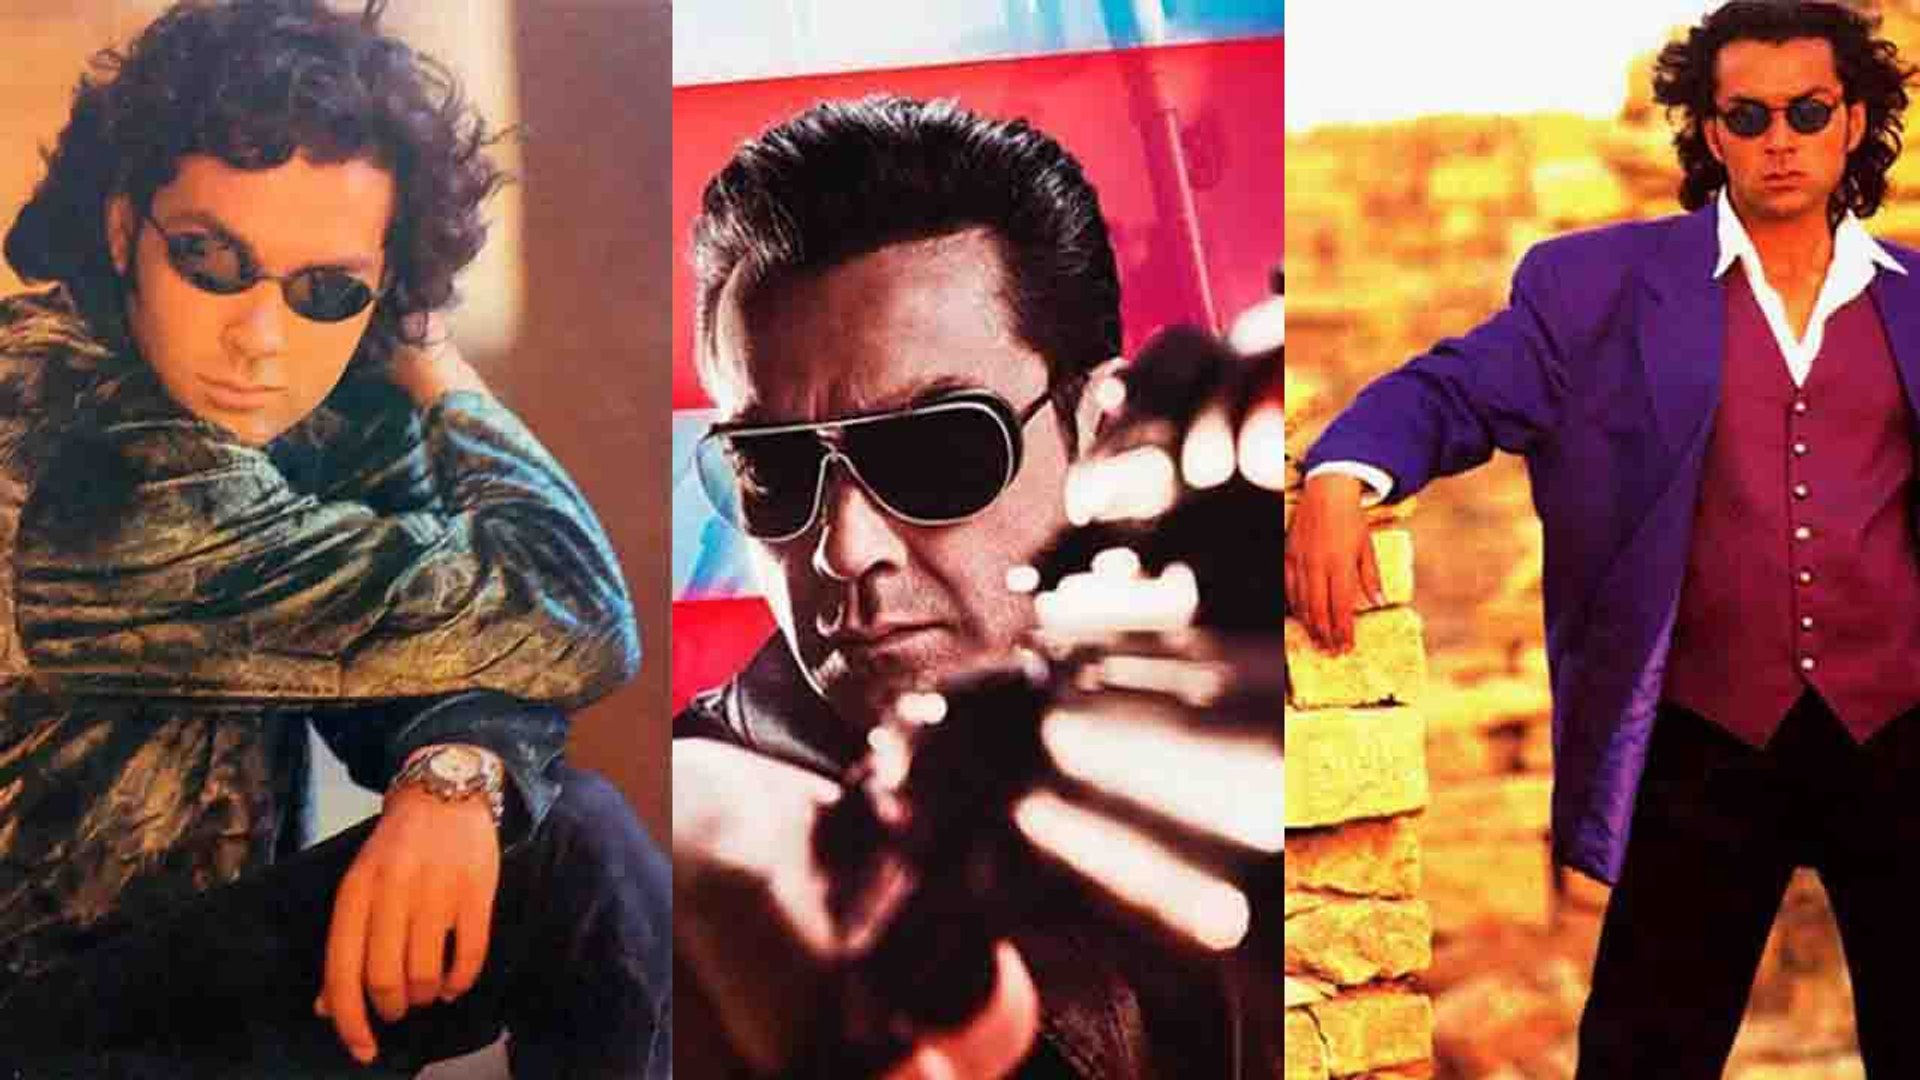 Bobby Deol & his Story from STARDOM to failure, will he find lost stardom in Race 3? | FilmiBeat